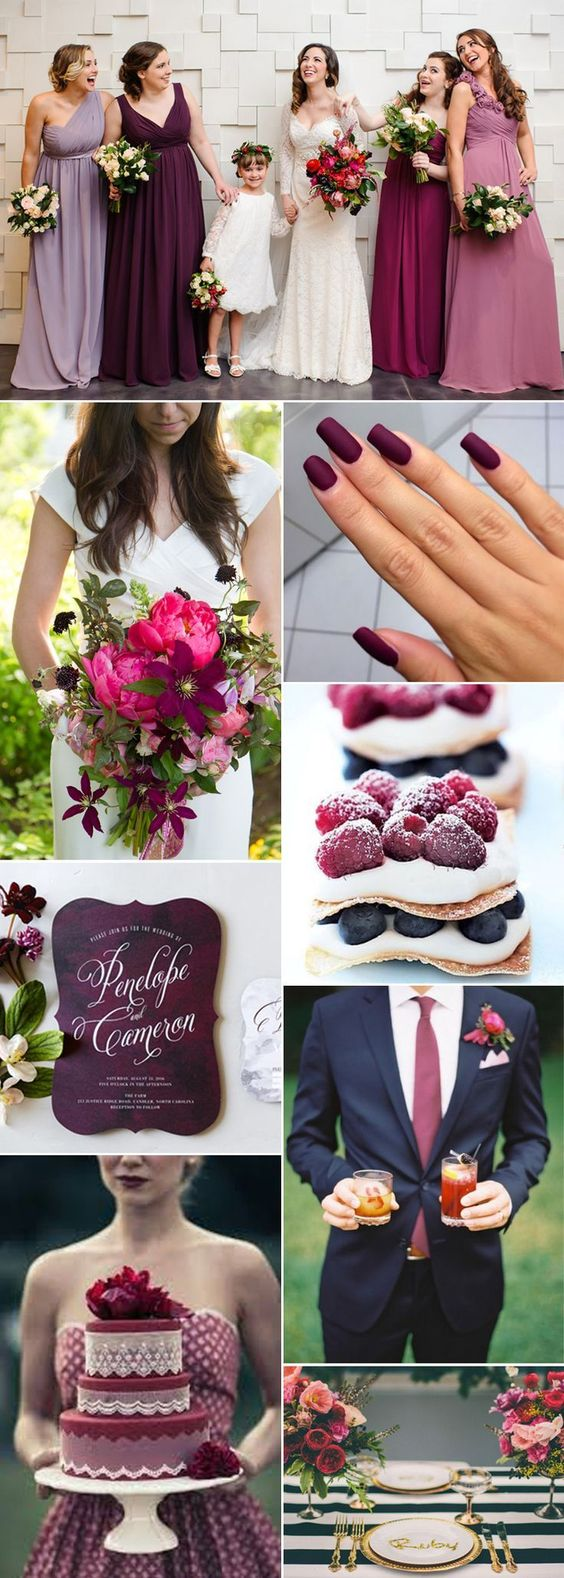 smitten-2 Trend Forecasting: Top 15 Expected Wedding Color Ideas for 2021